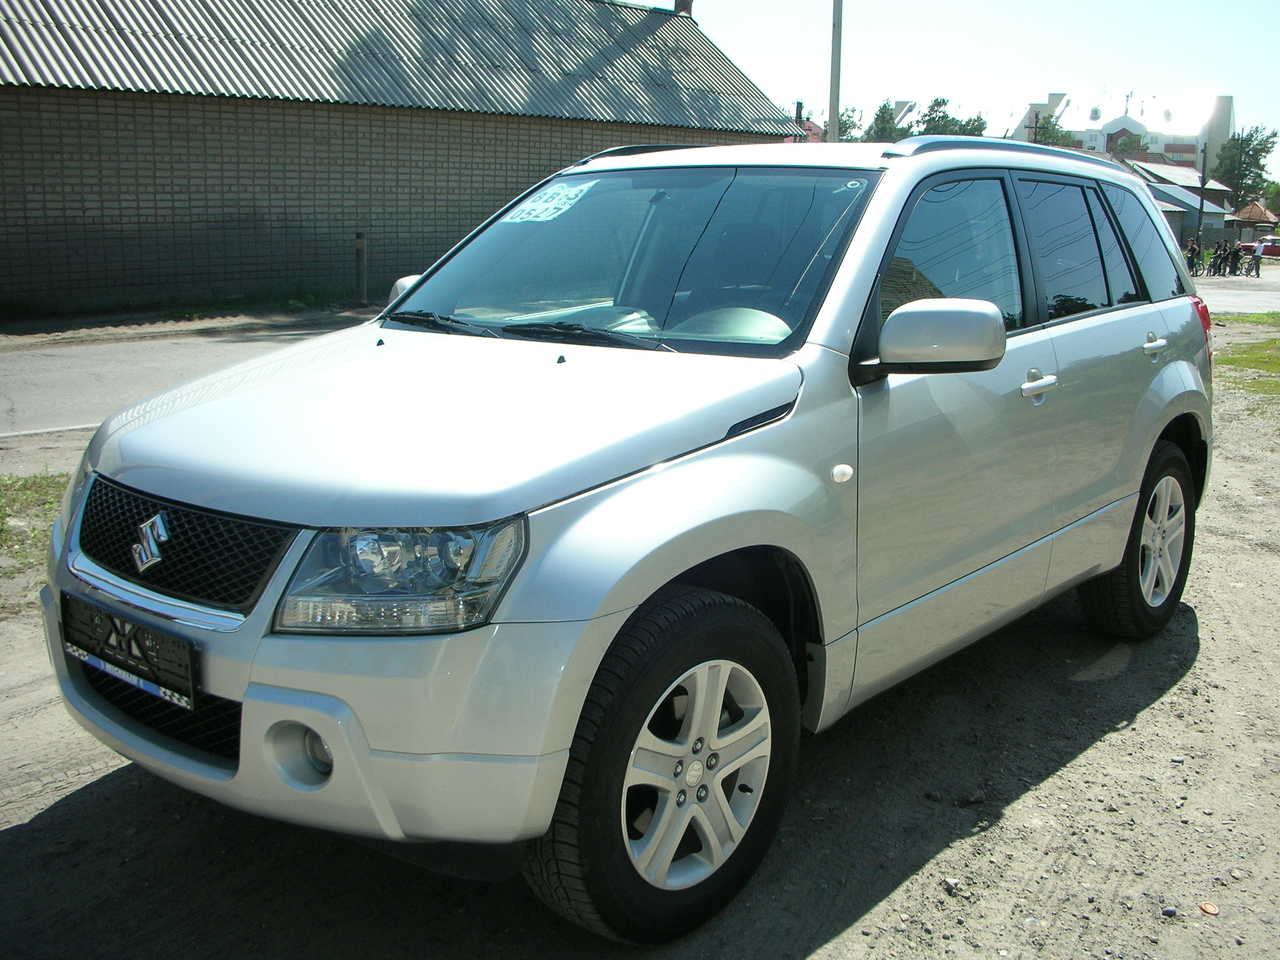 Suzuki Grand Vitara 2.0 2008 photo - 11